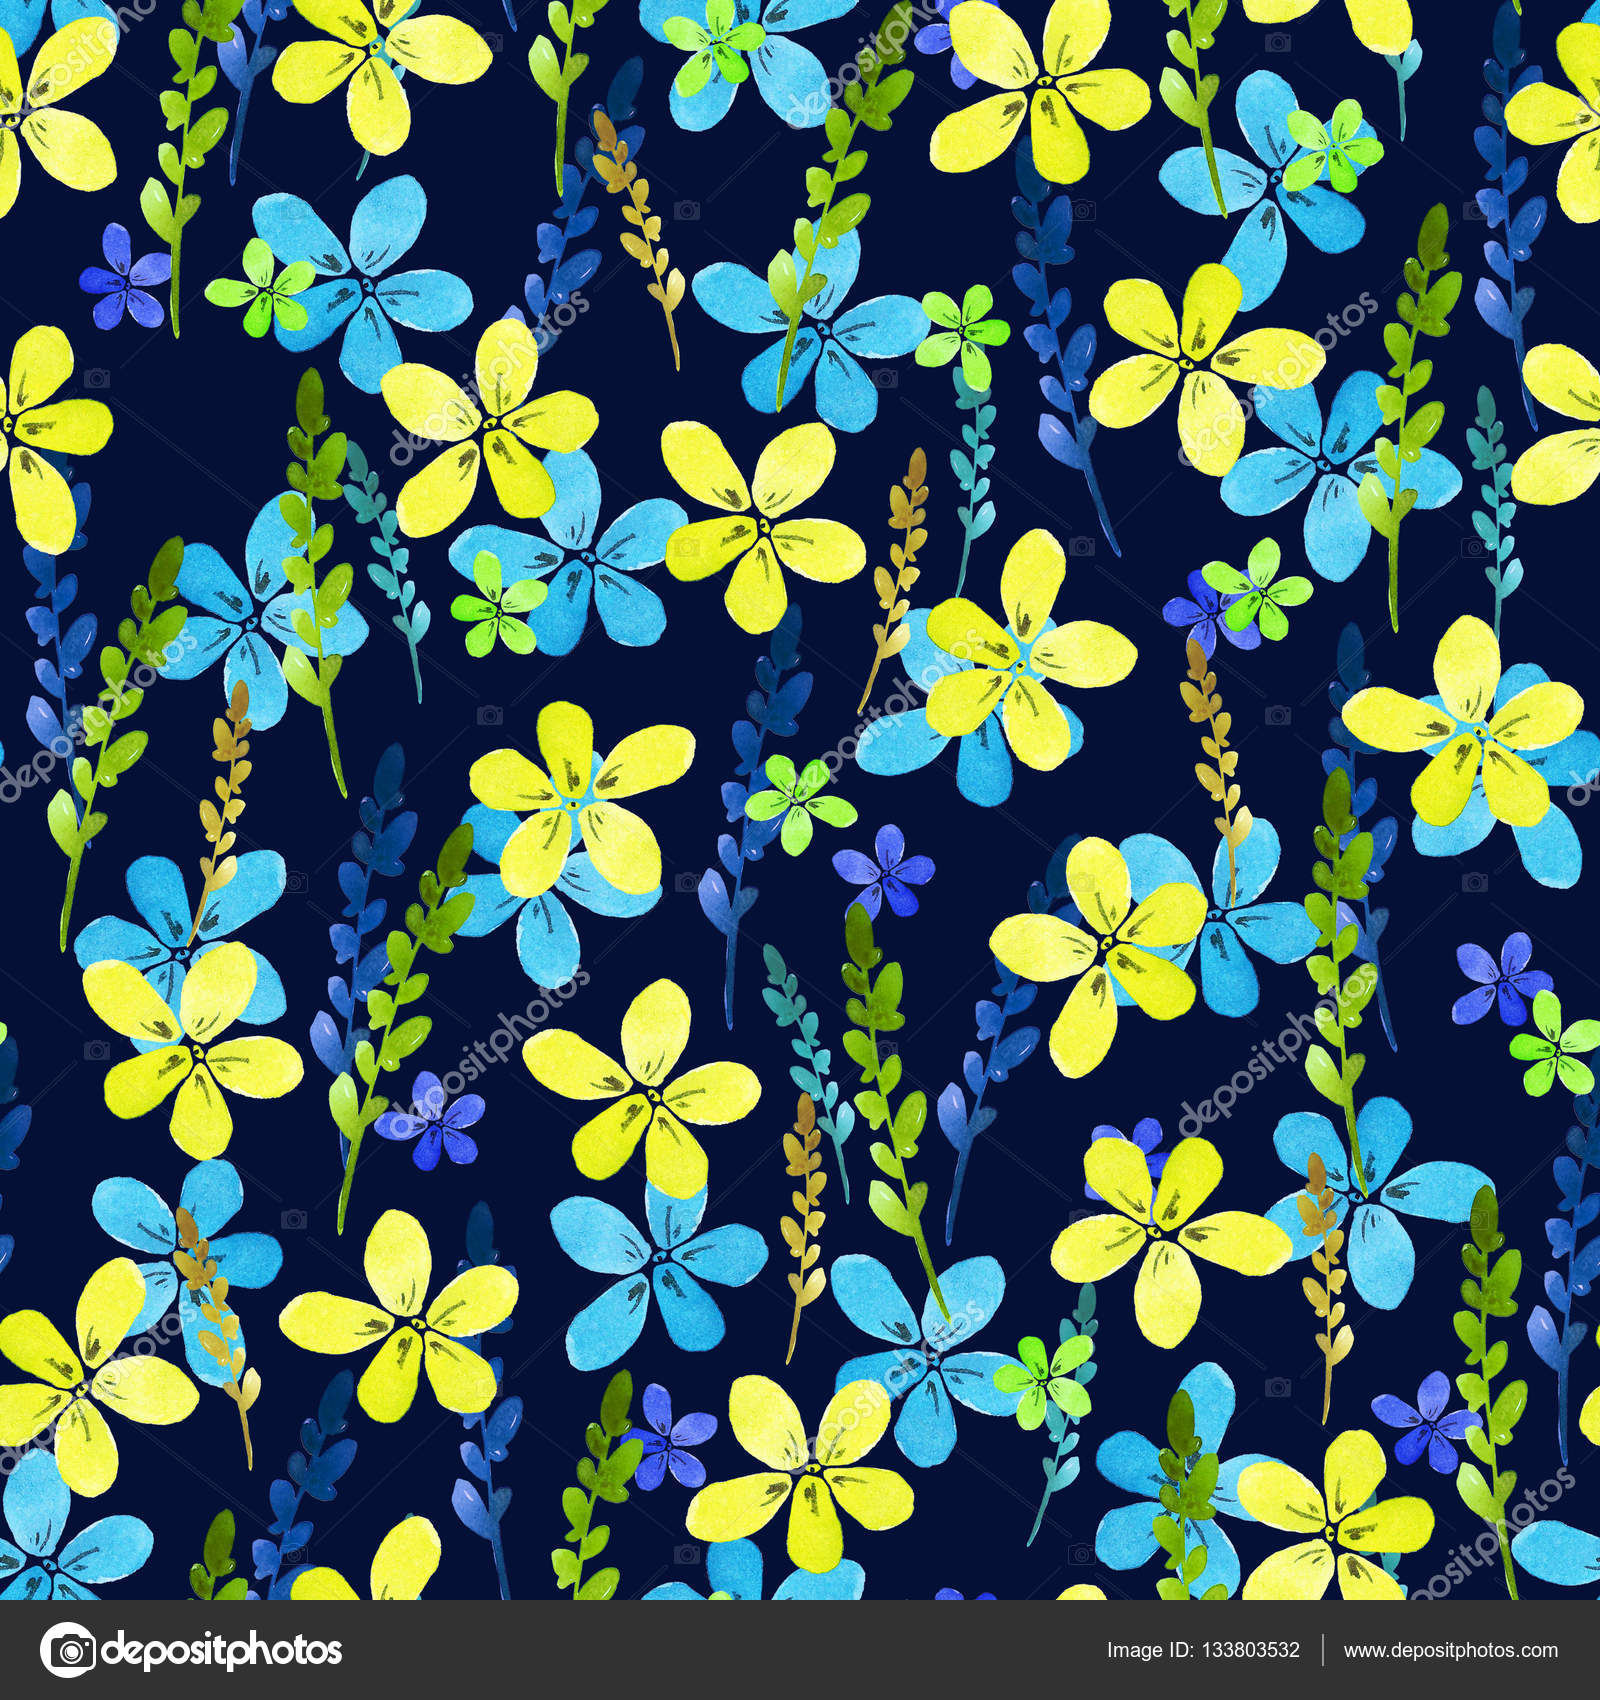 Seamless Floral Pattern With Watercolor Blue Yellow Flowers And